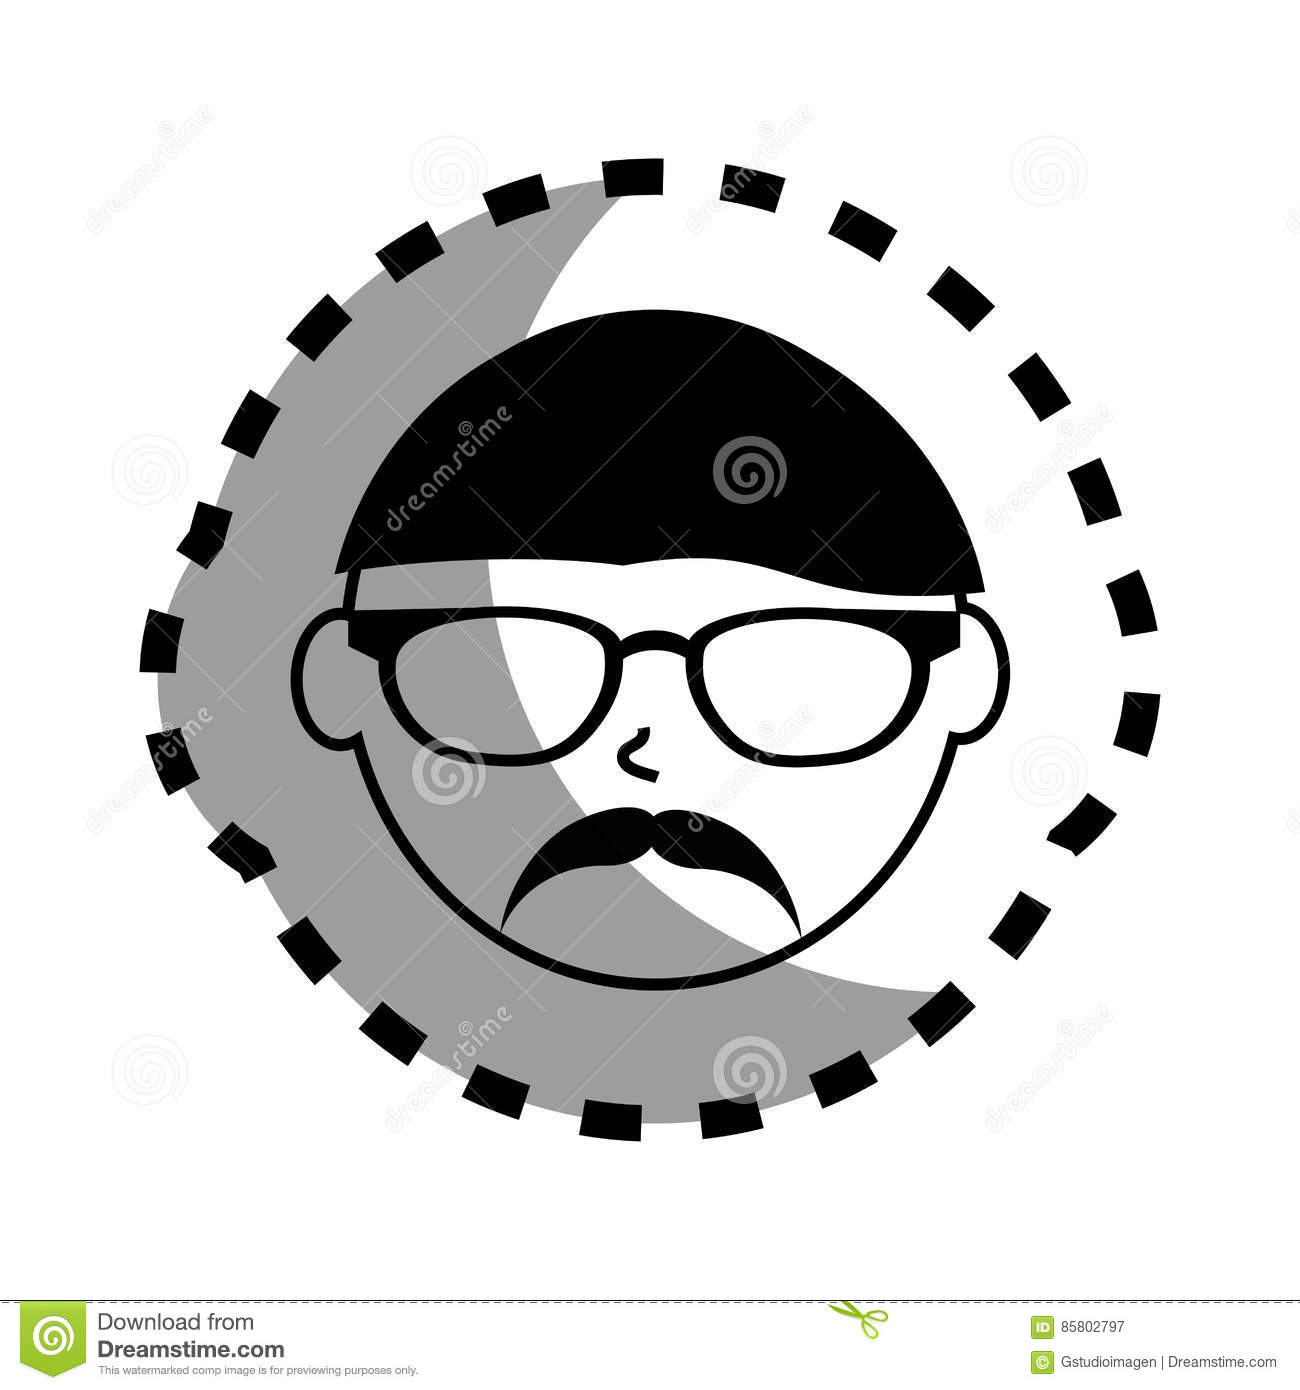 Sticker with man face monochrome with glasses and mustache style mexican